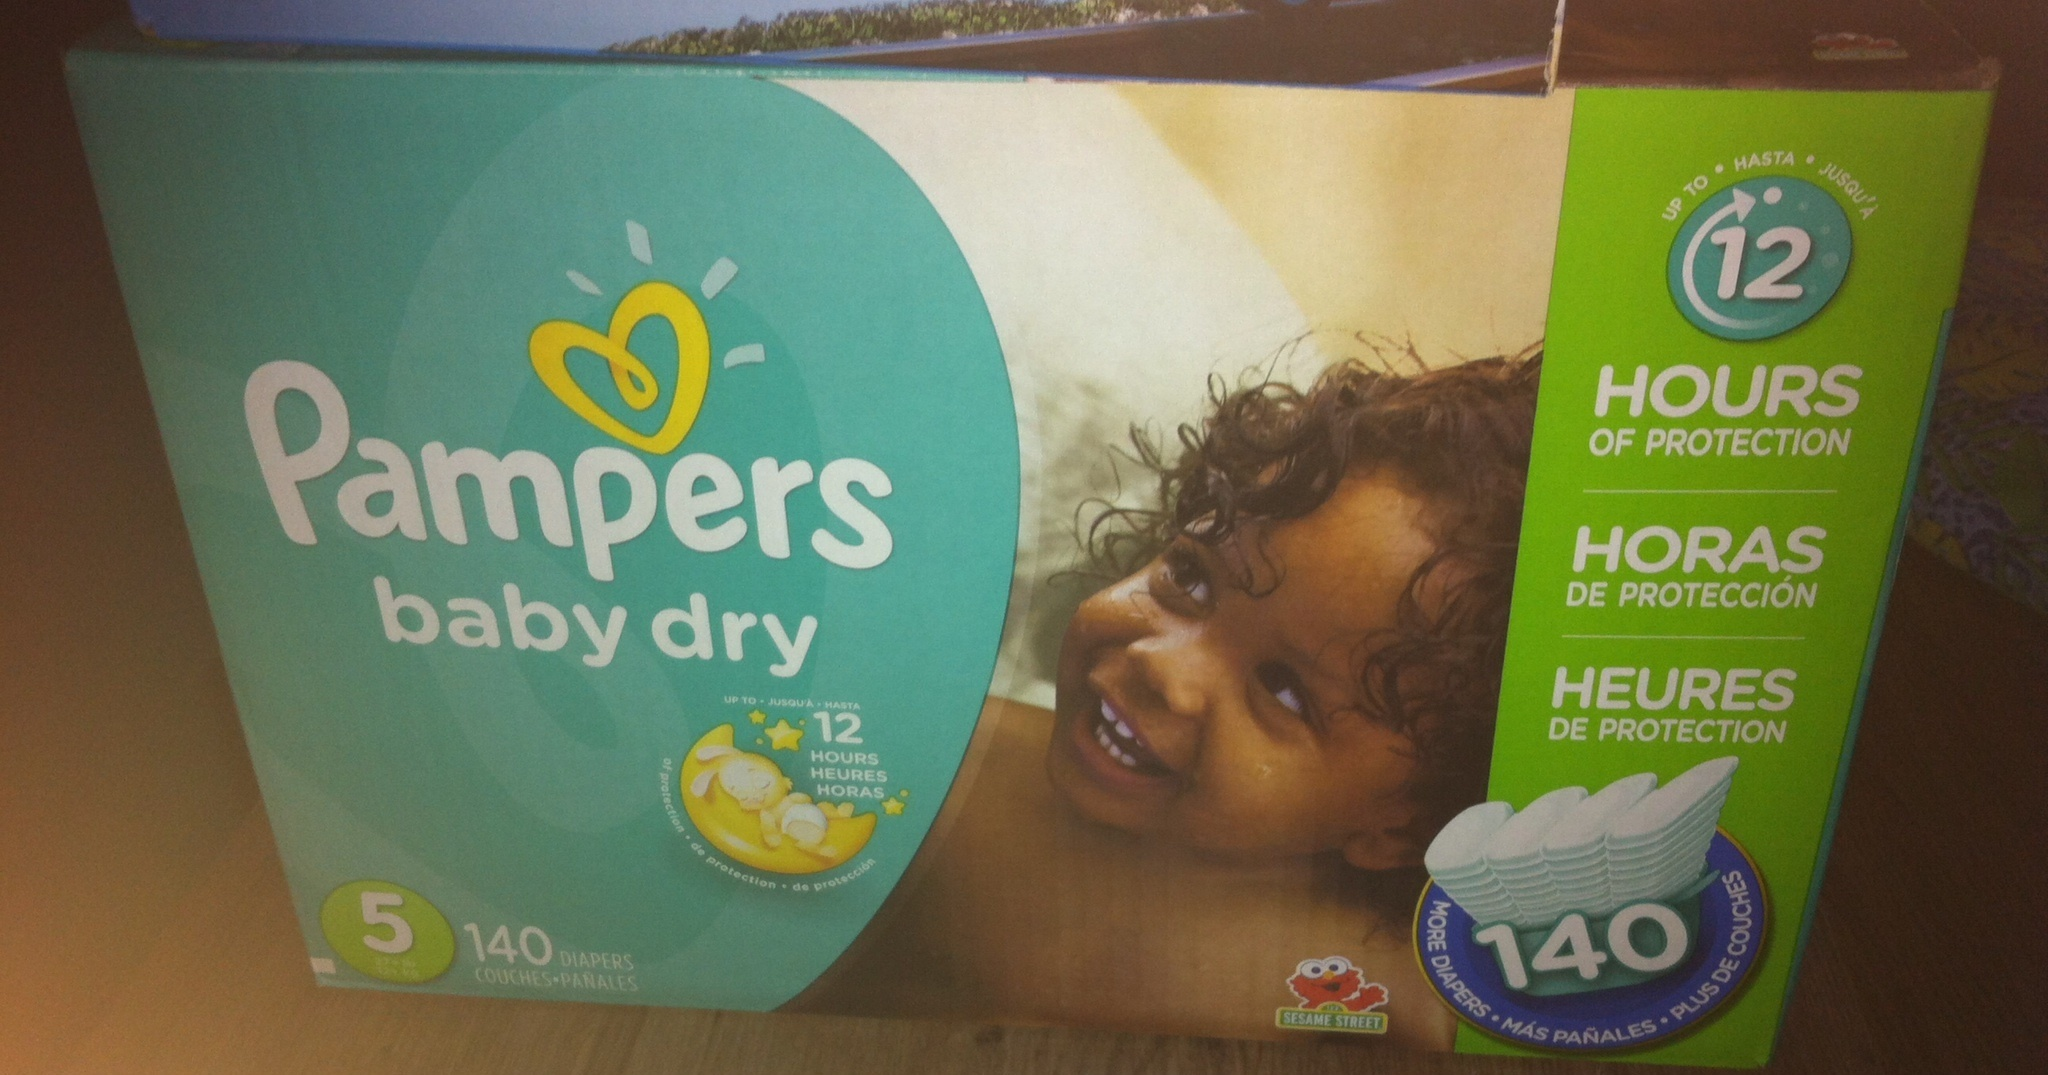 Pampers Baby Dry Diapers Reviews In Diapers Disposable